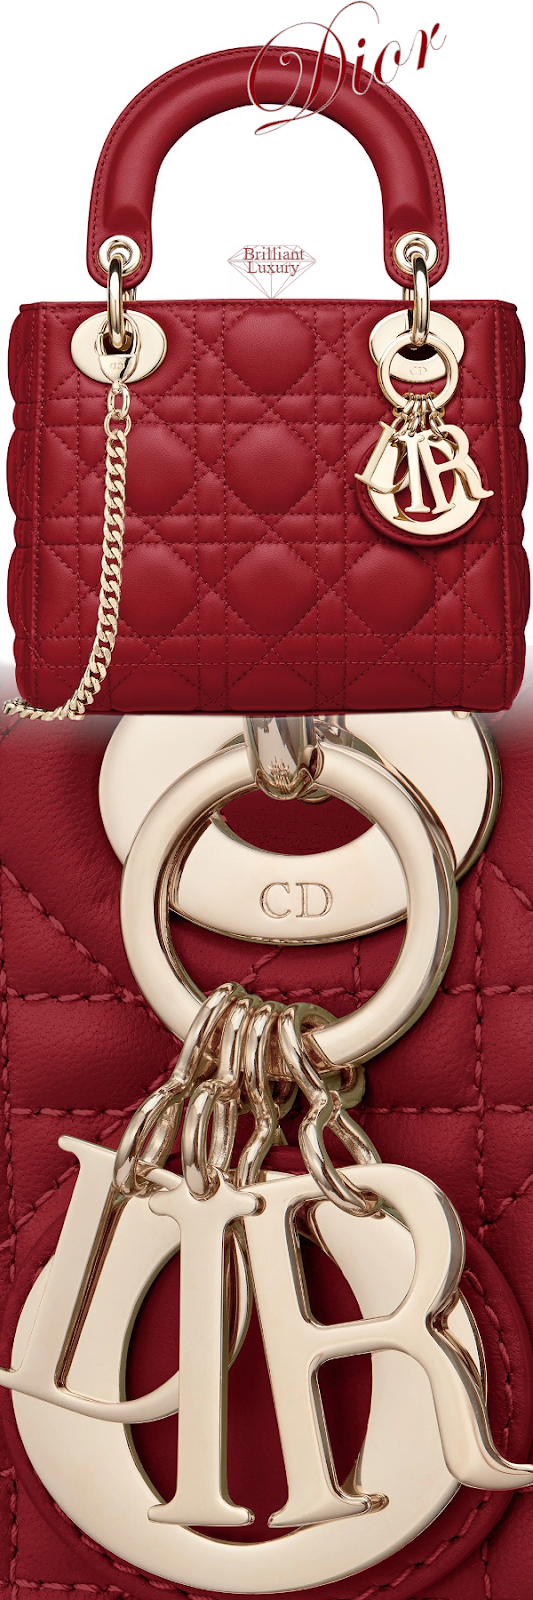 Dior Lady Dior Cherry Red Mini Lambskin Chain Bag #brilliantluxury